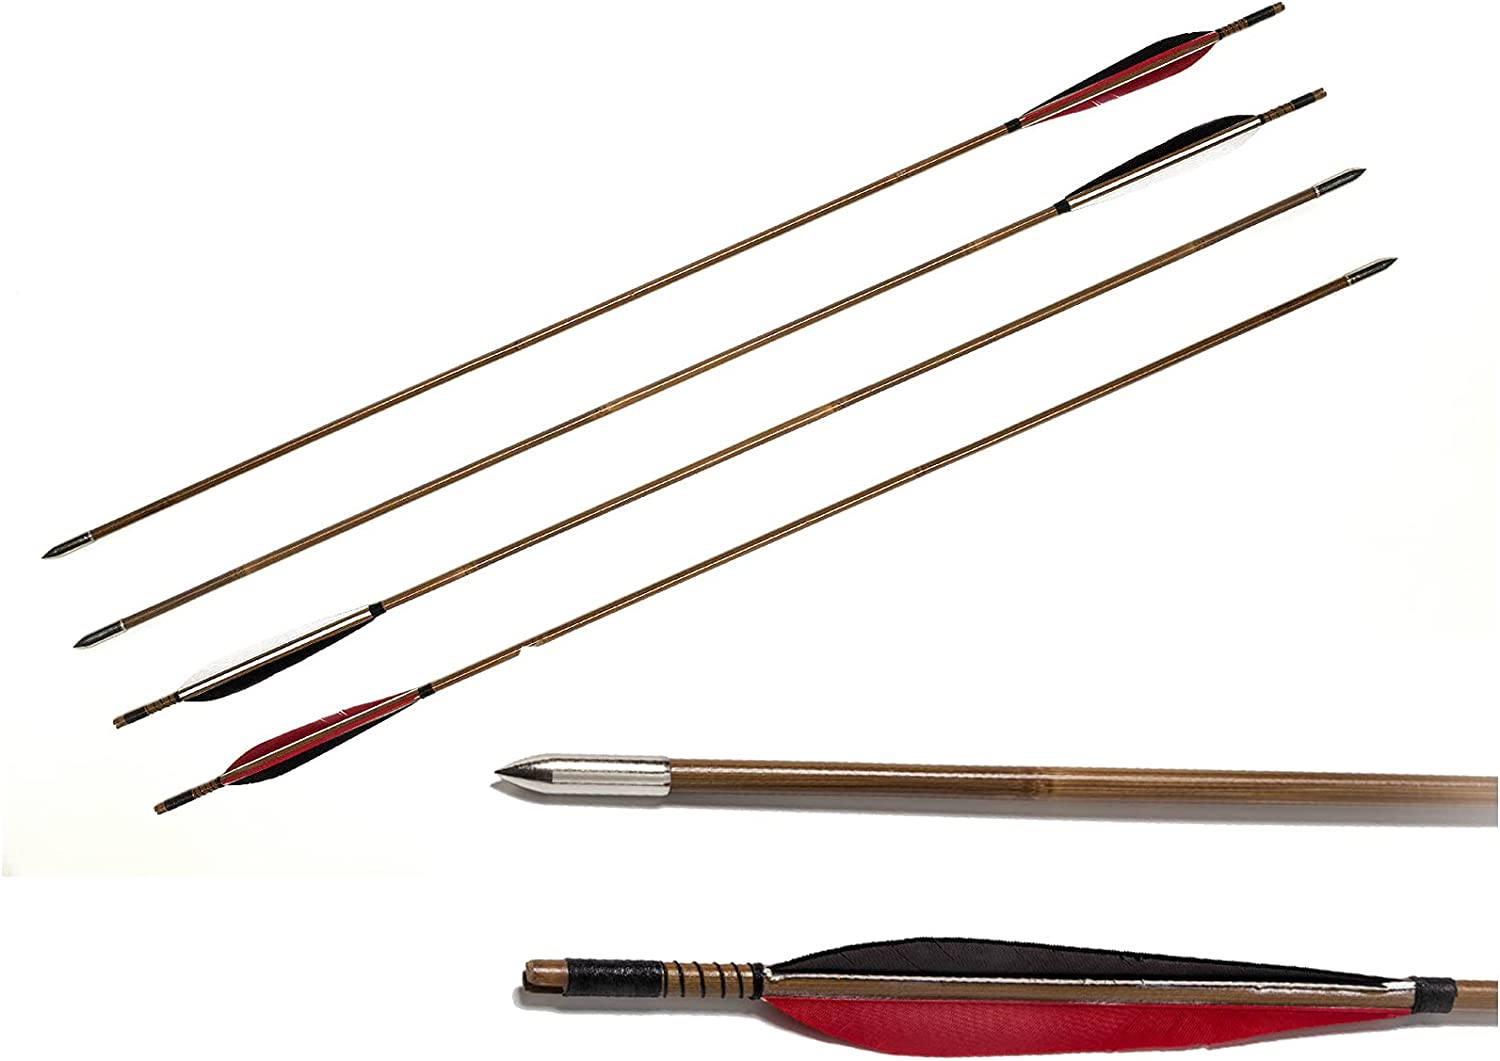 K99 Spring new work one after another 4 Pcs Traditional Handmade Hun Archery Bamboo Feather Turkey Tucson Mall